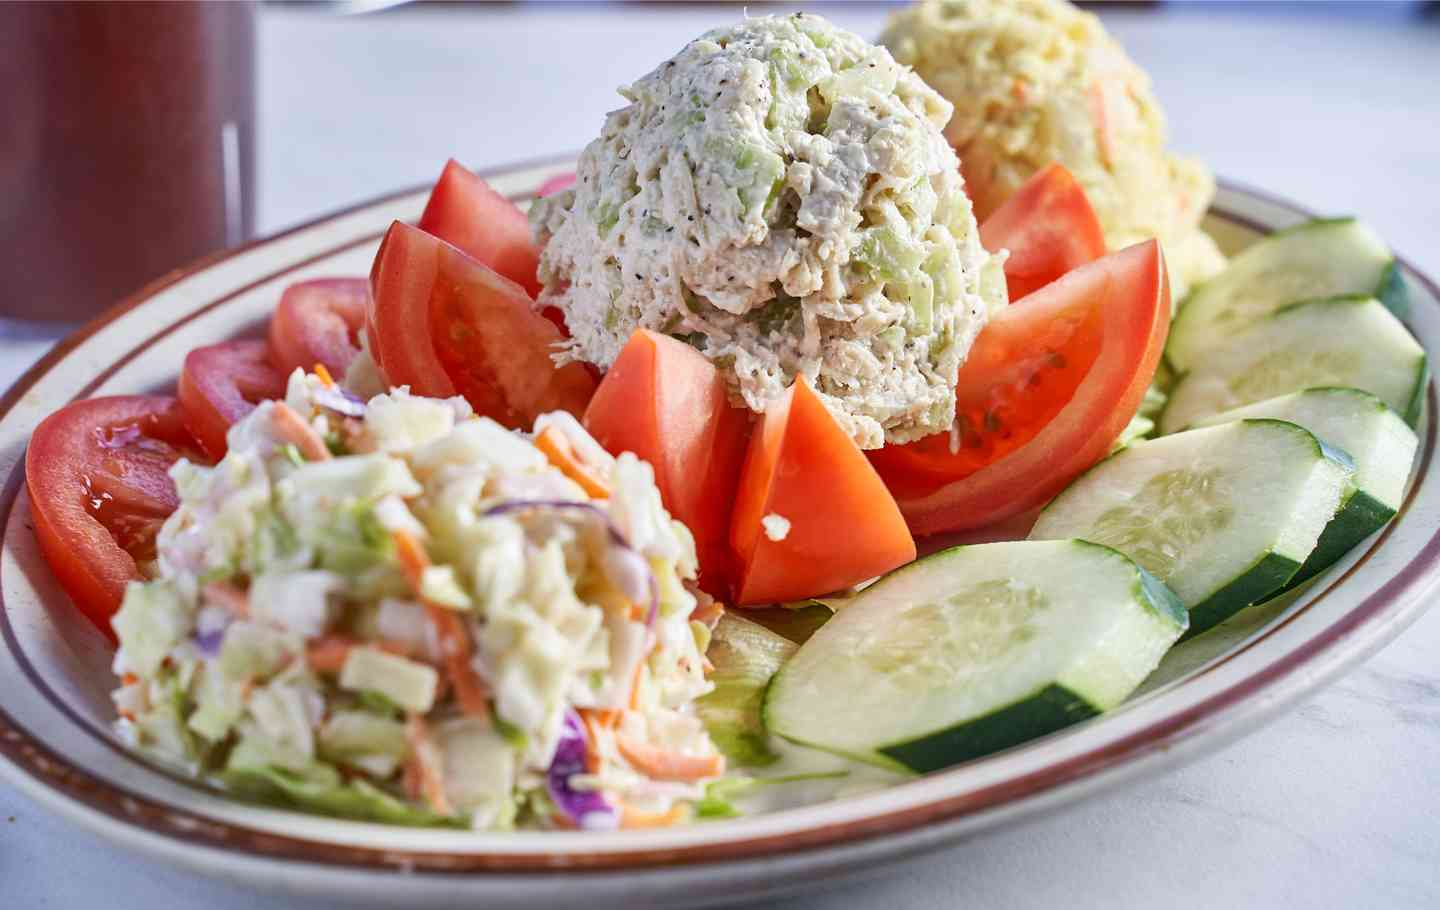 Stuffed Tomato with Chicken Salad Platter